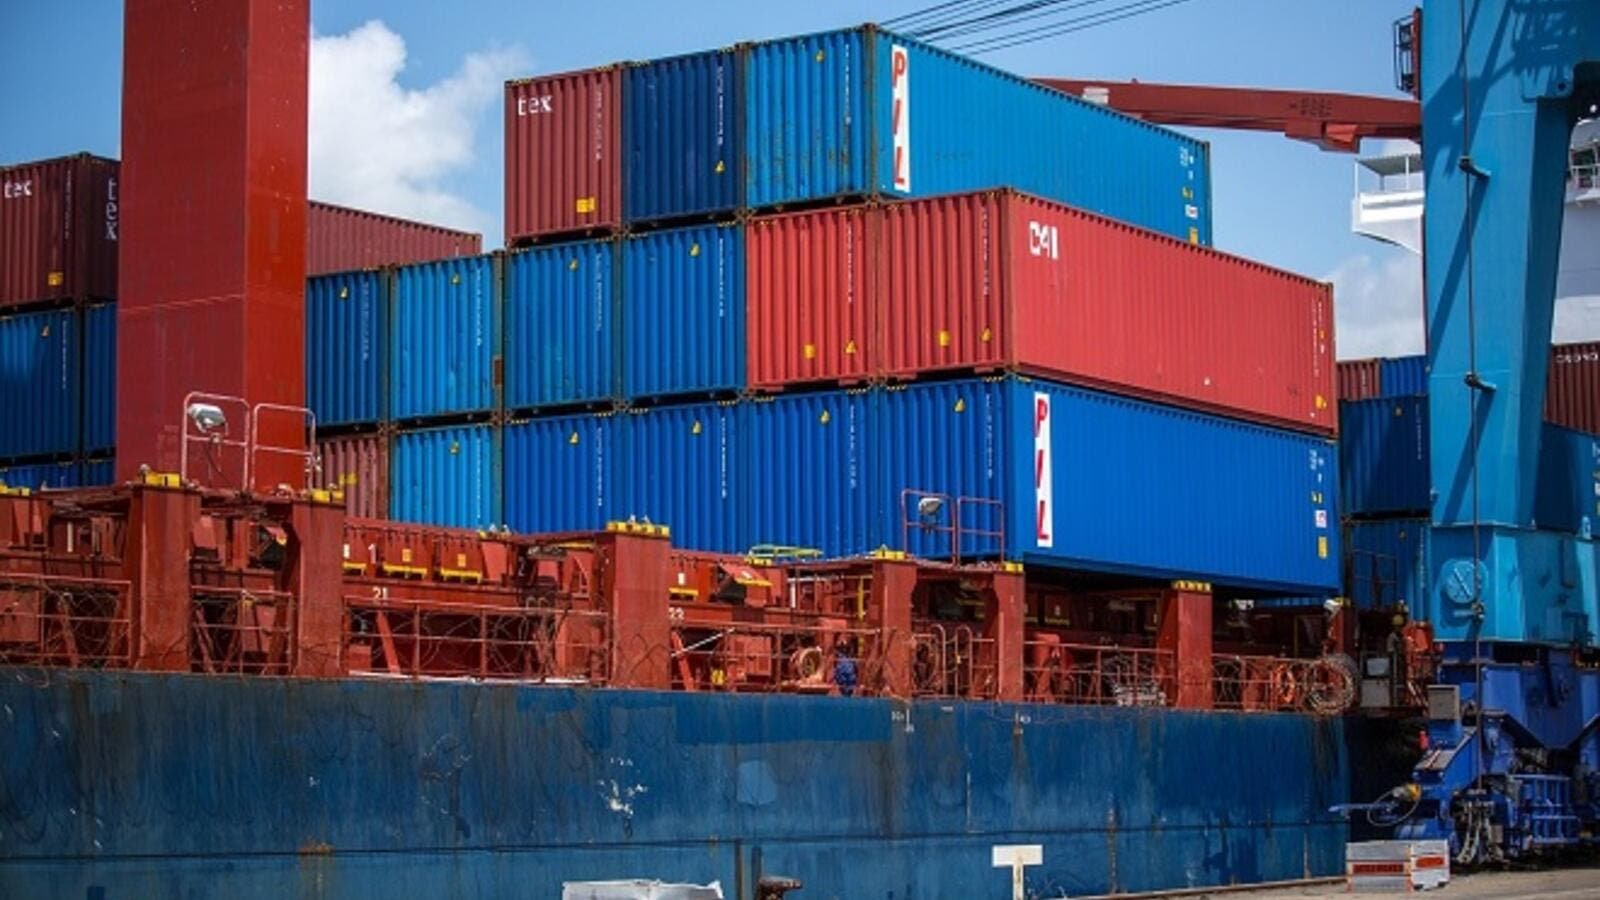 Saudi Arabia tops list of importers from Bahrain with $119M: Report